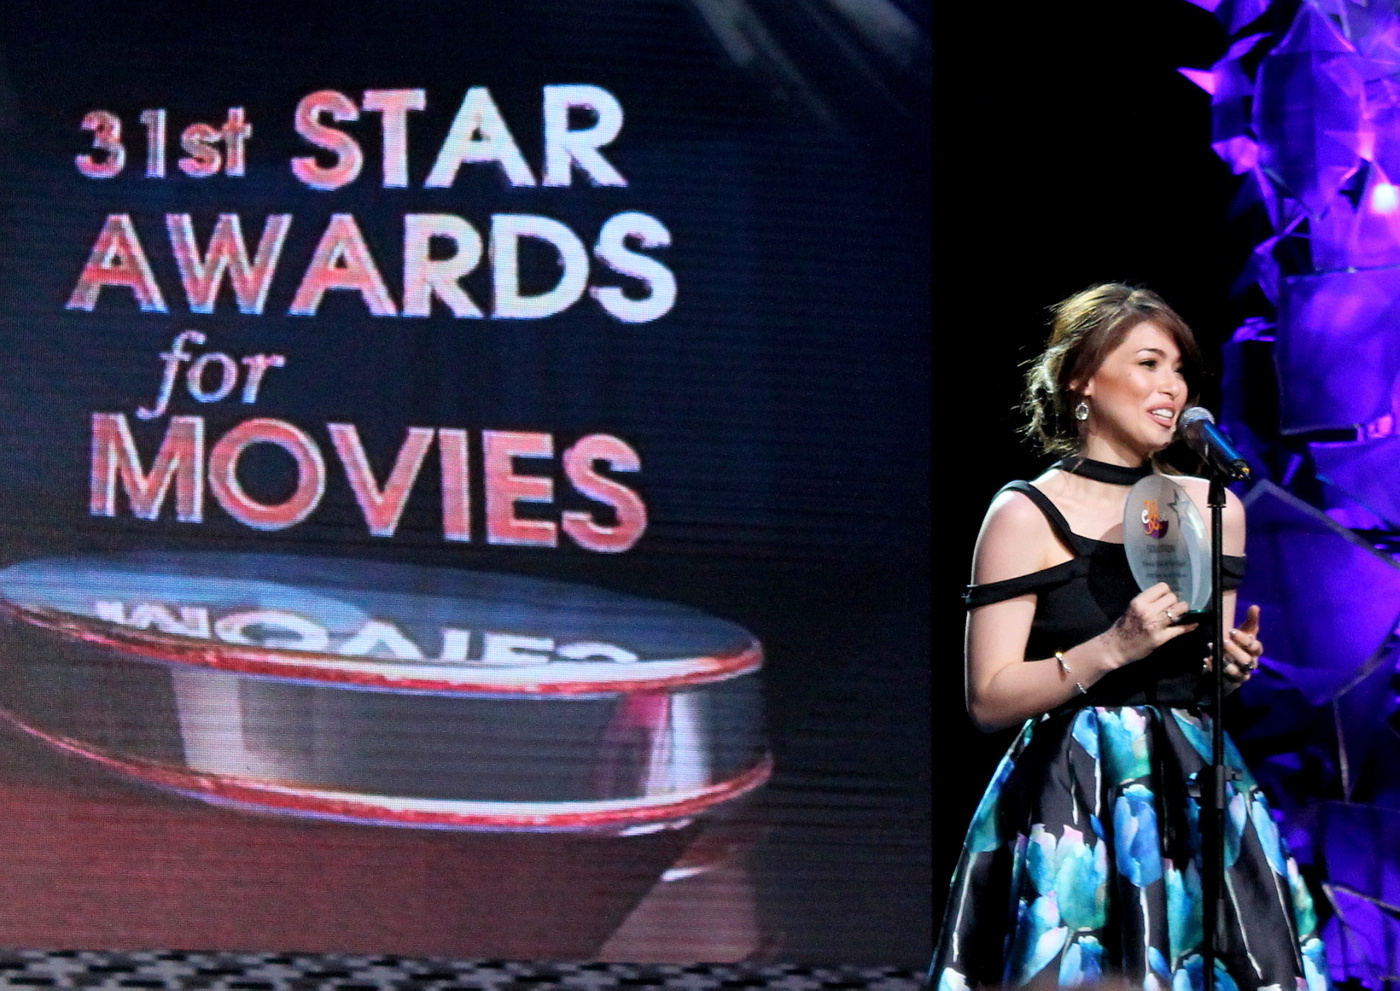 star awards for movies 2015